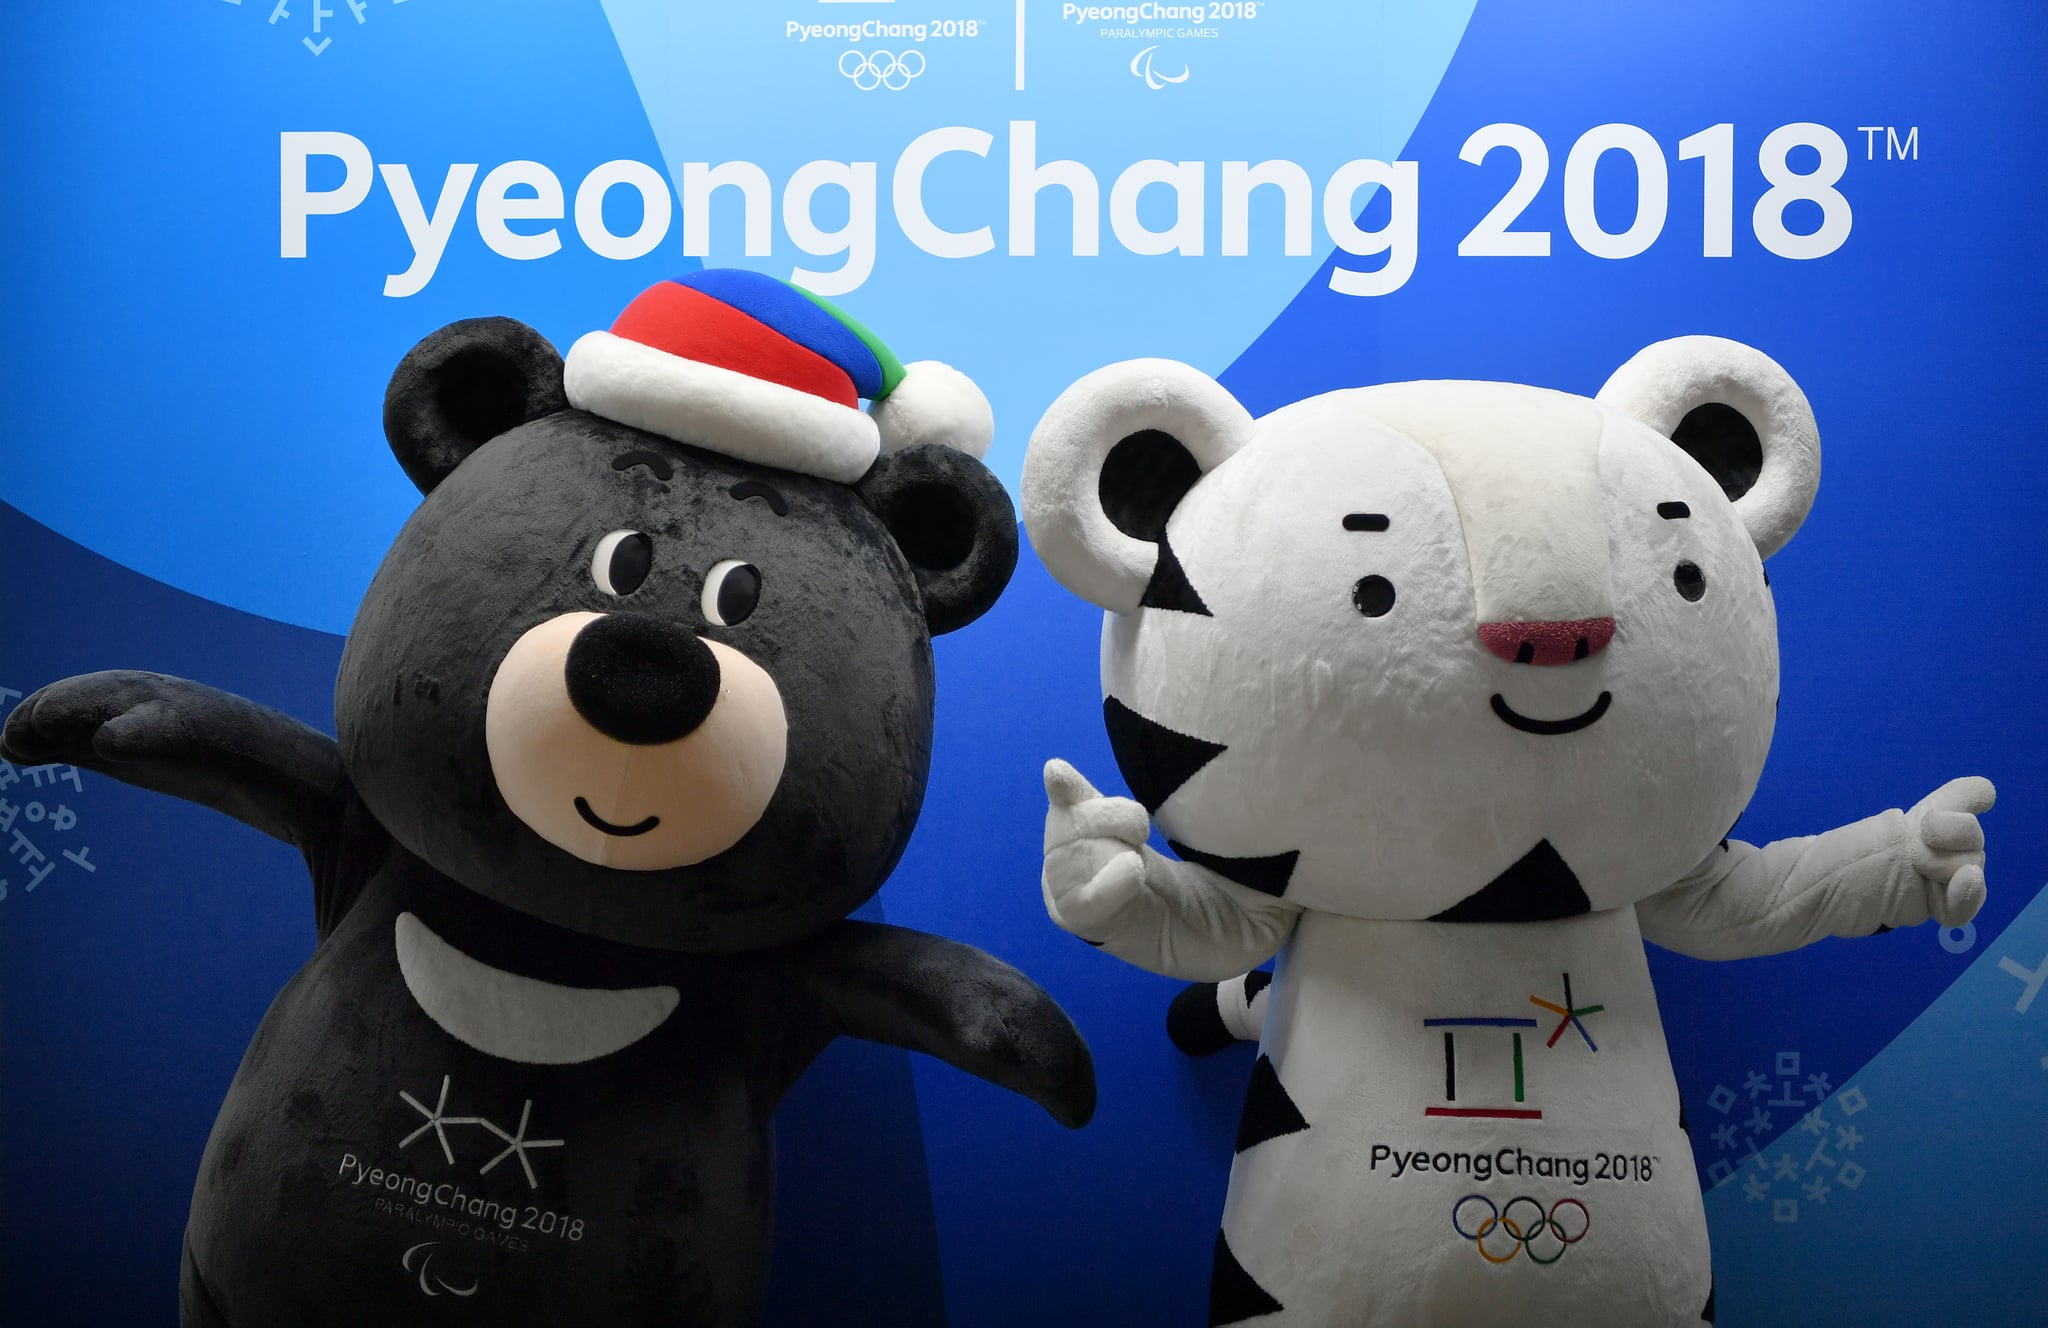 [Chicago Tribune] Korean unity at Olympics: Is there any there?